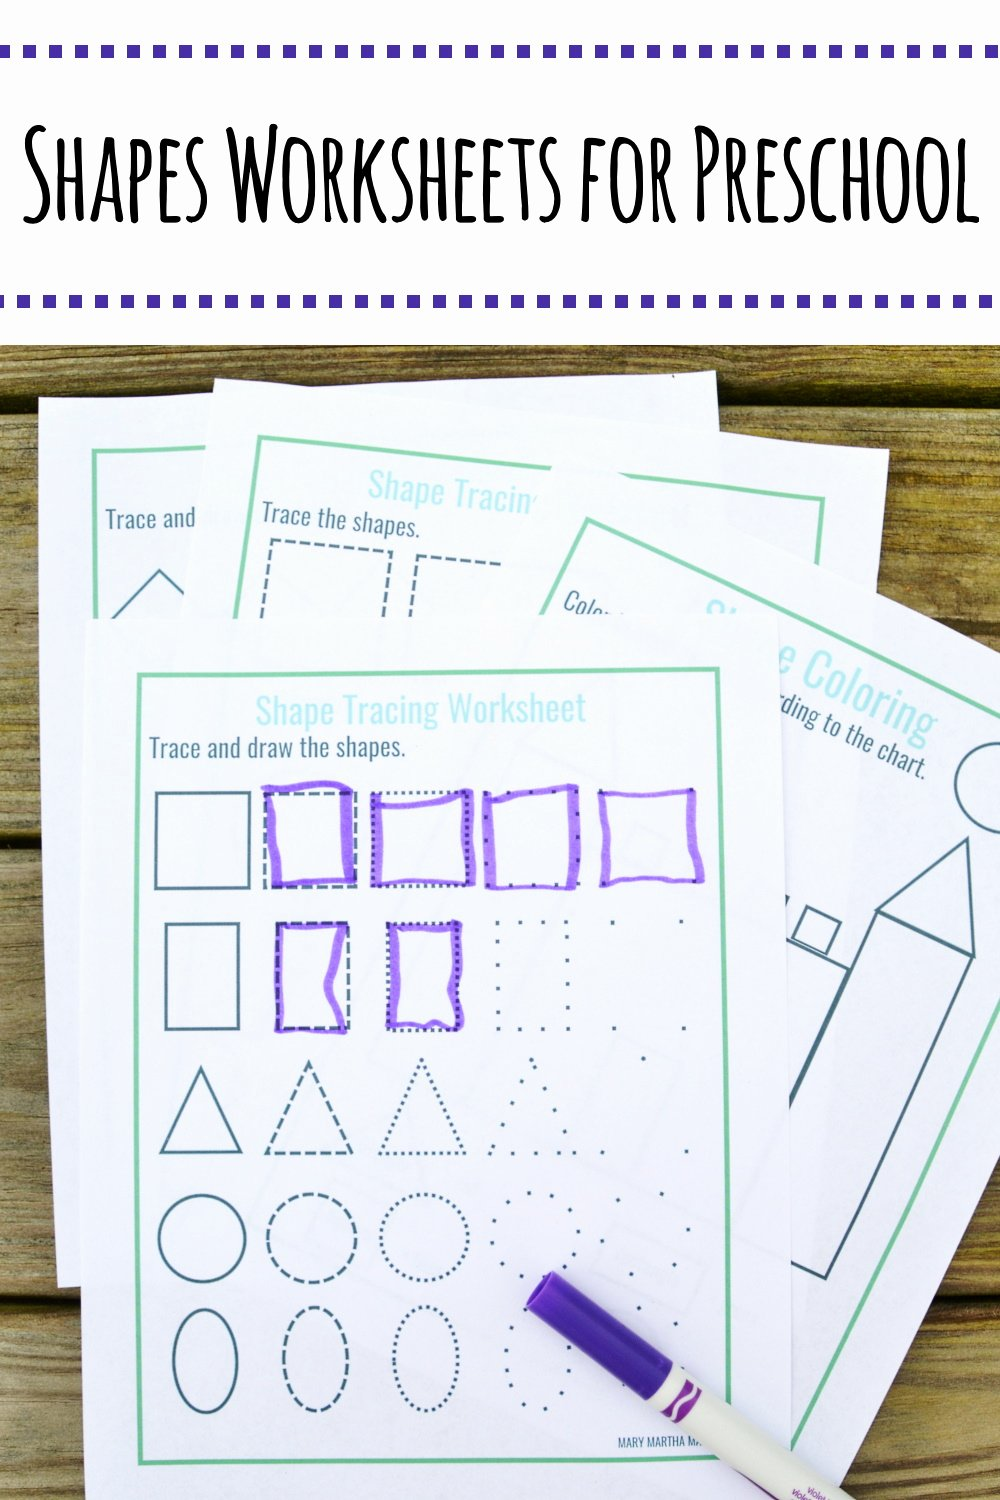 Worksheets for Preschoolers Shapes Unique Shapes Worksheets for Preschool [free Printables] – Mary